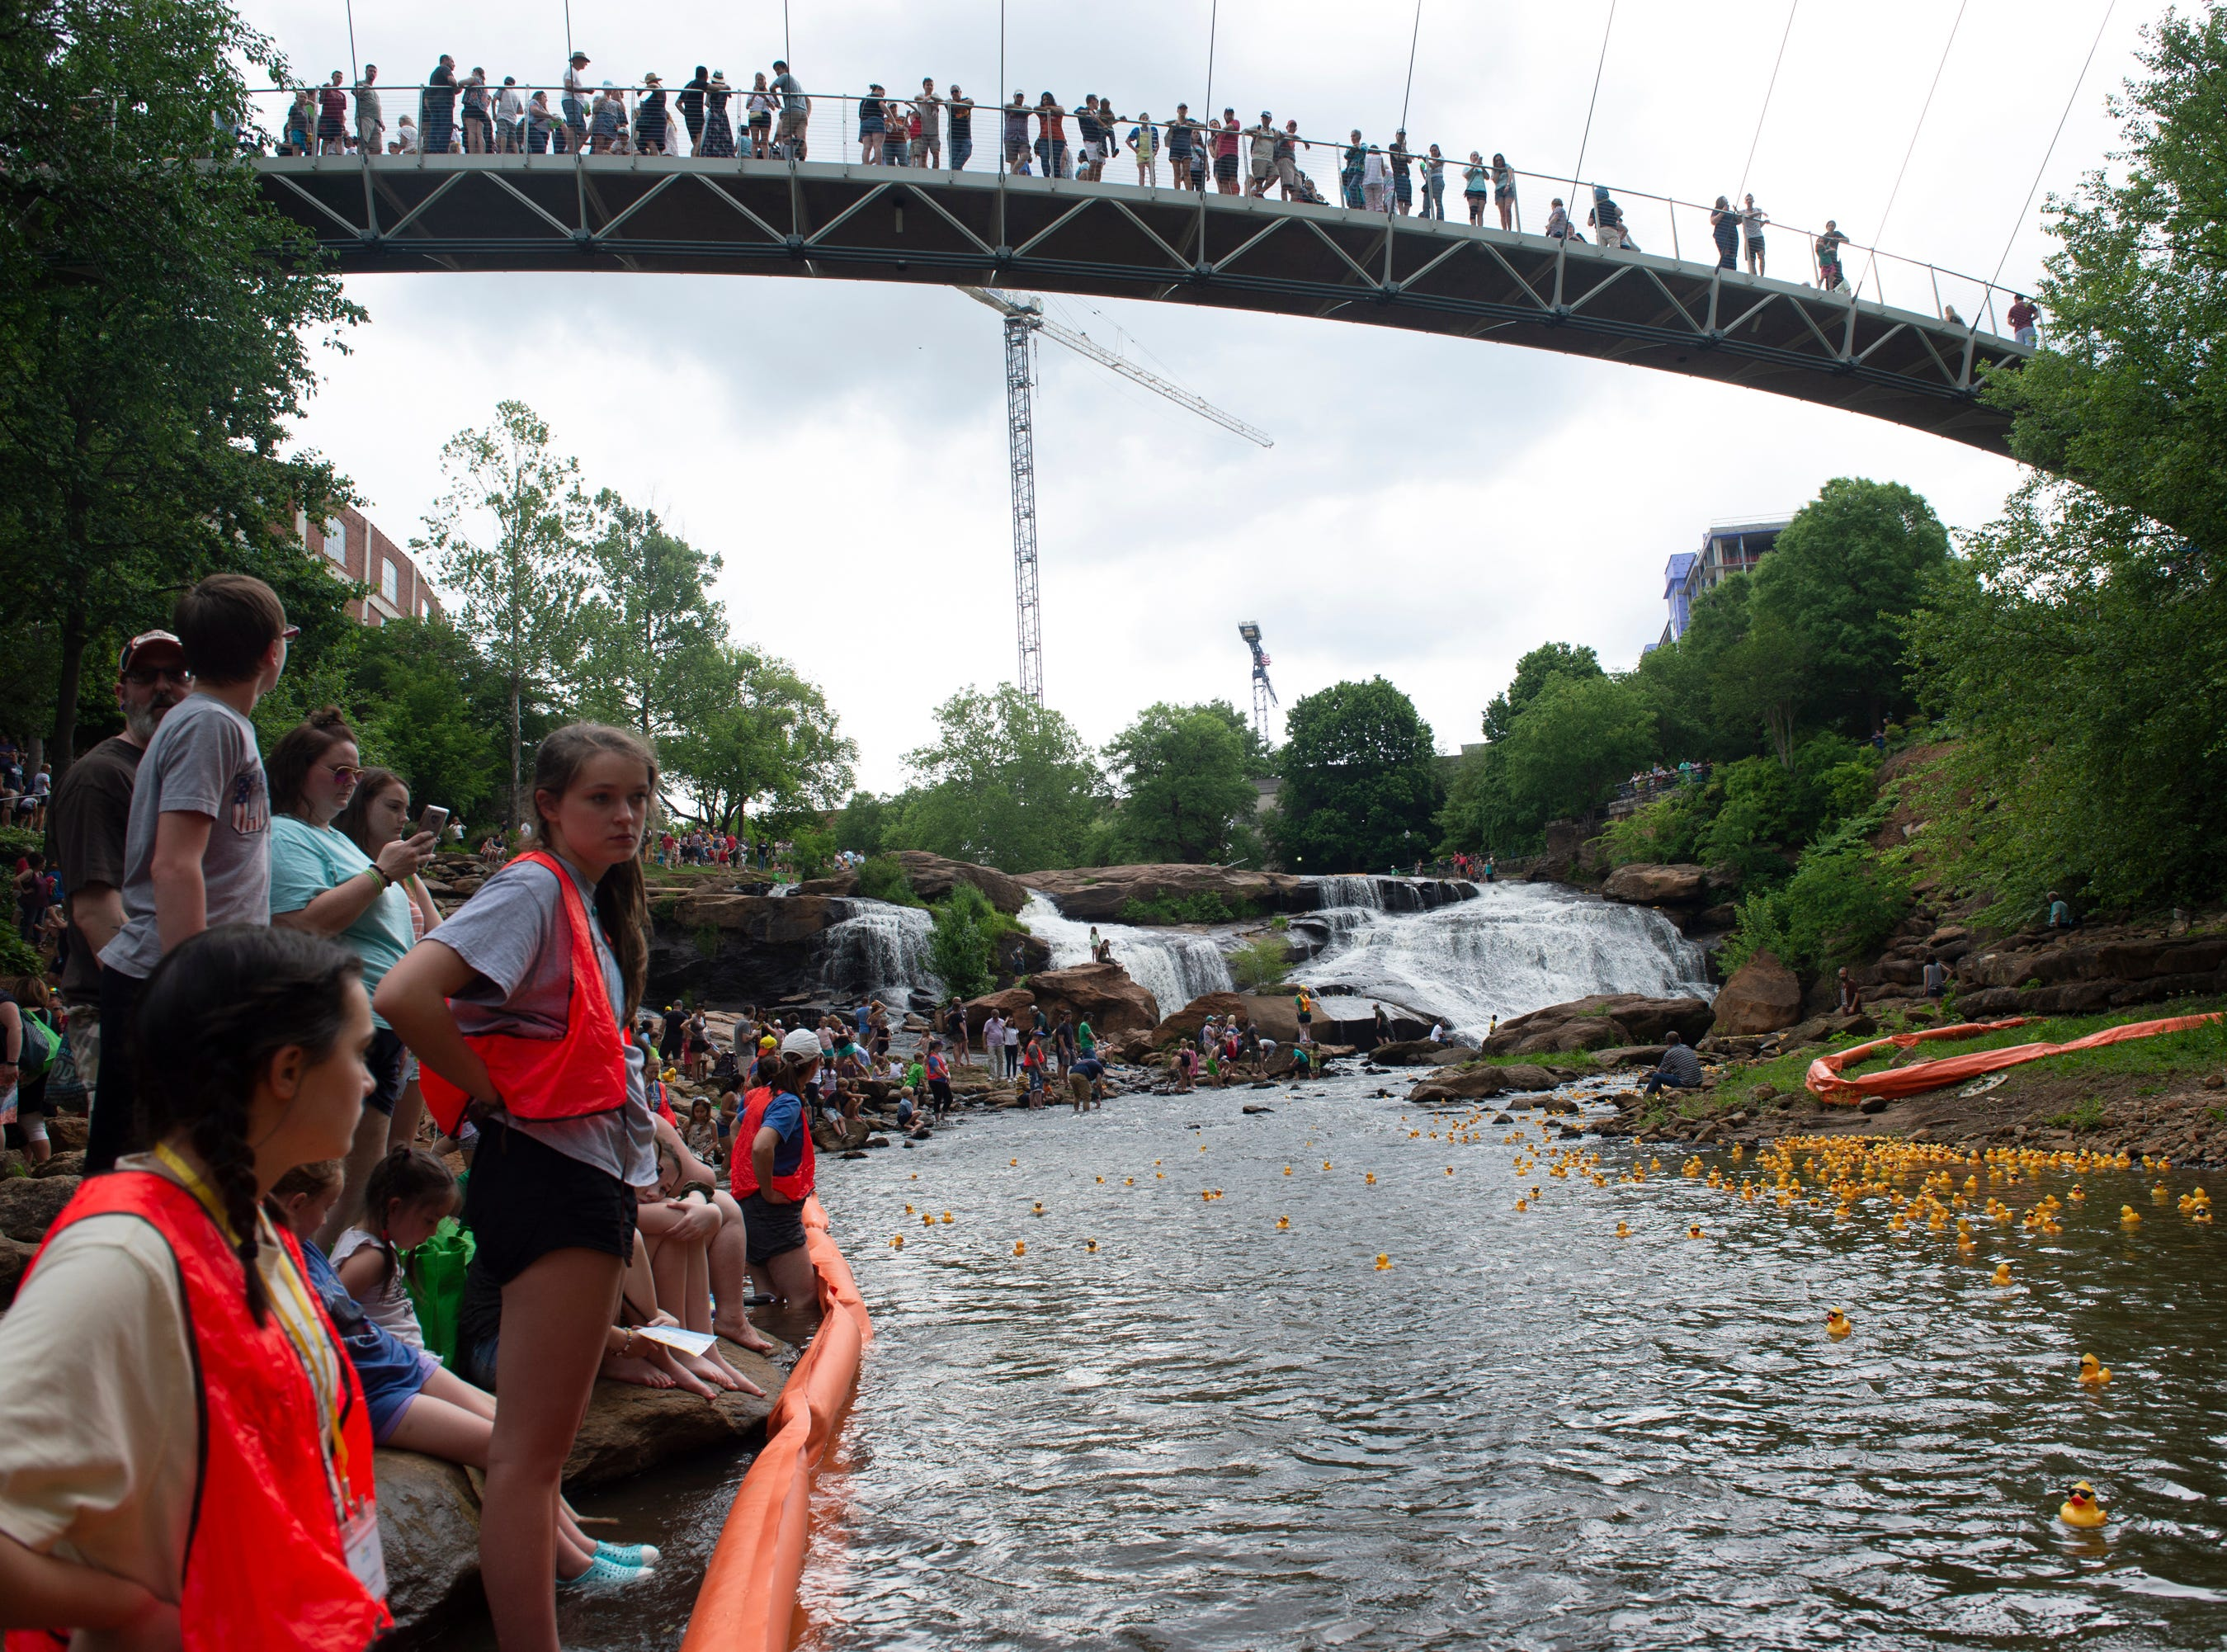 People watch the 2019 Reedy River Duck Derby in Falls Park on the Reedy Saturday, May 4, 2019.